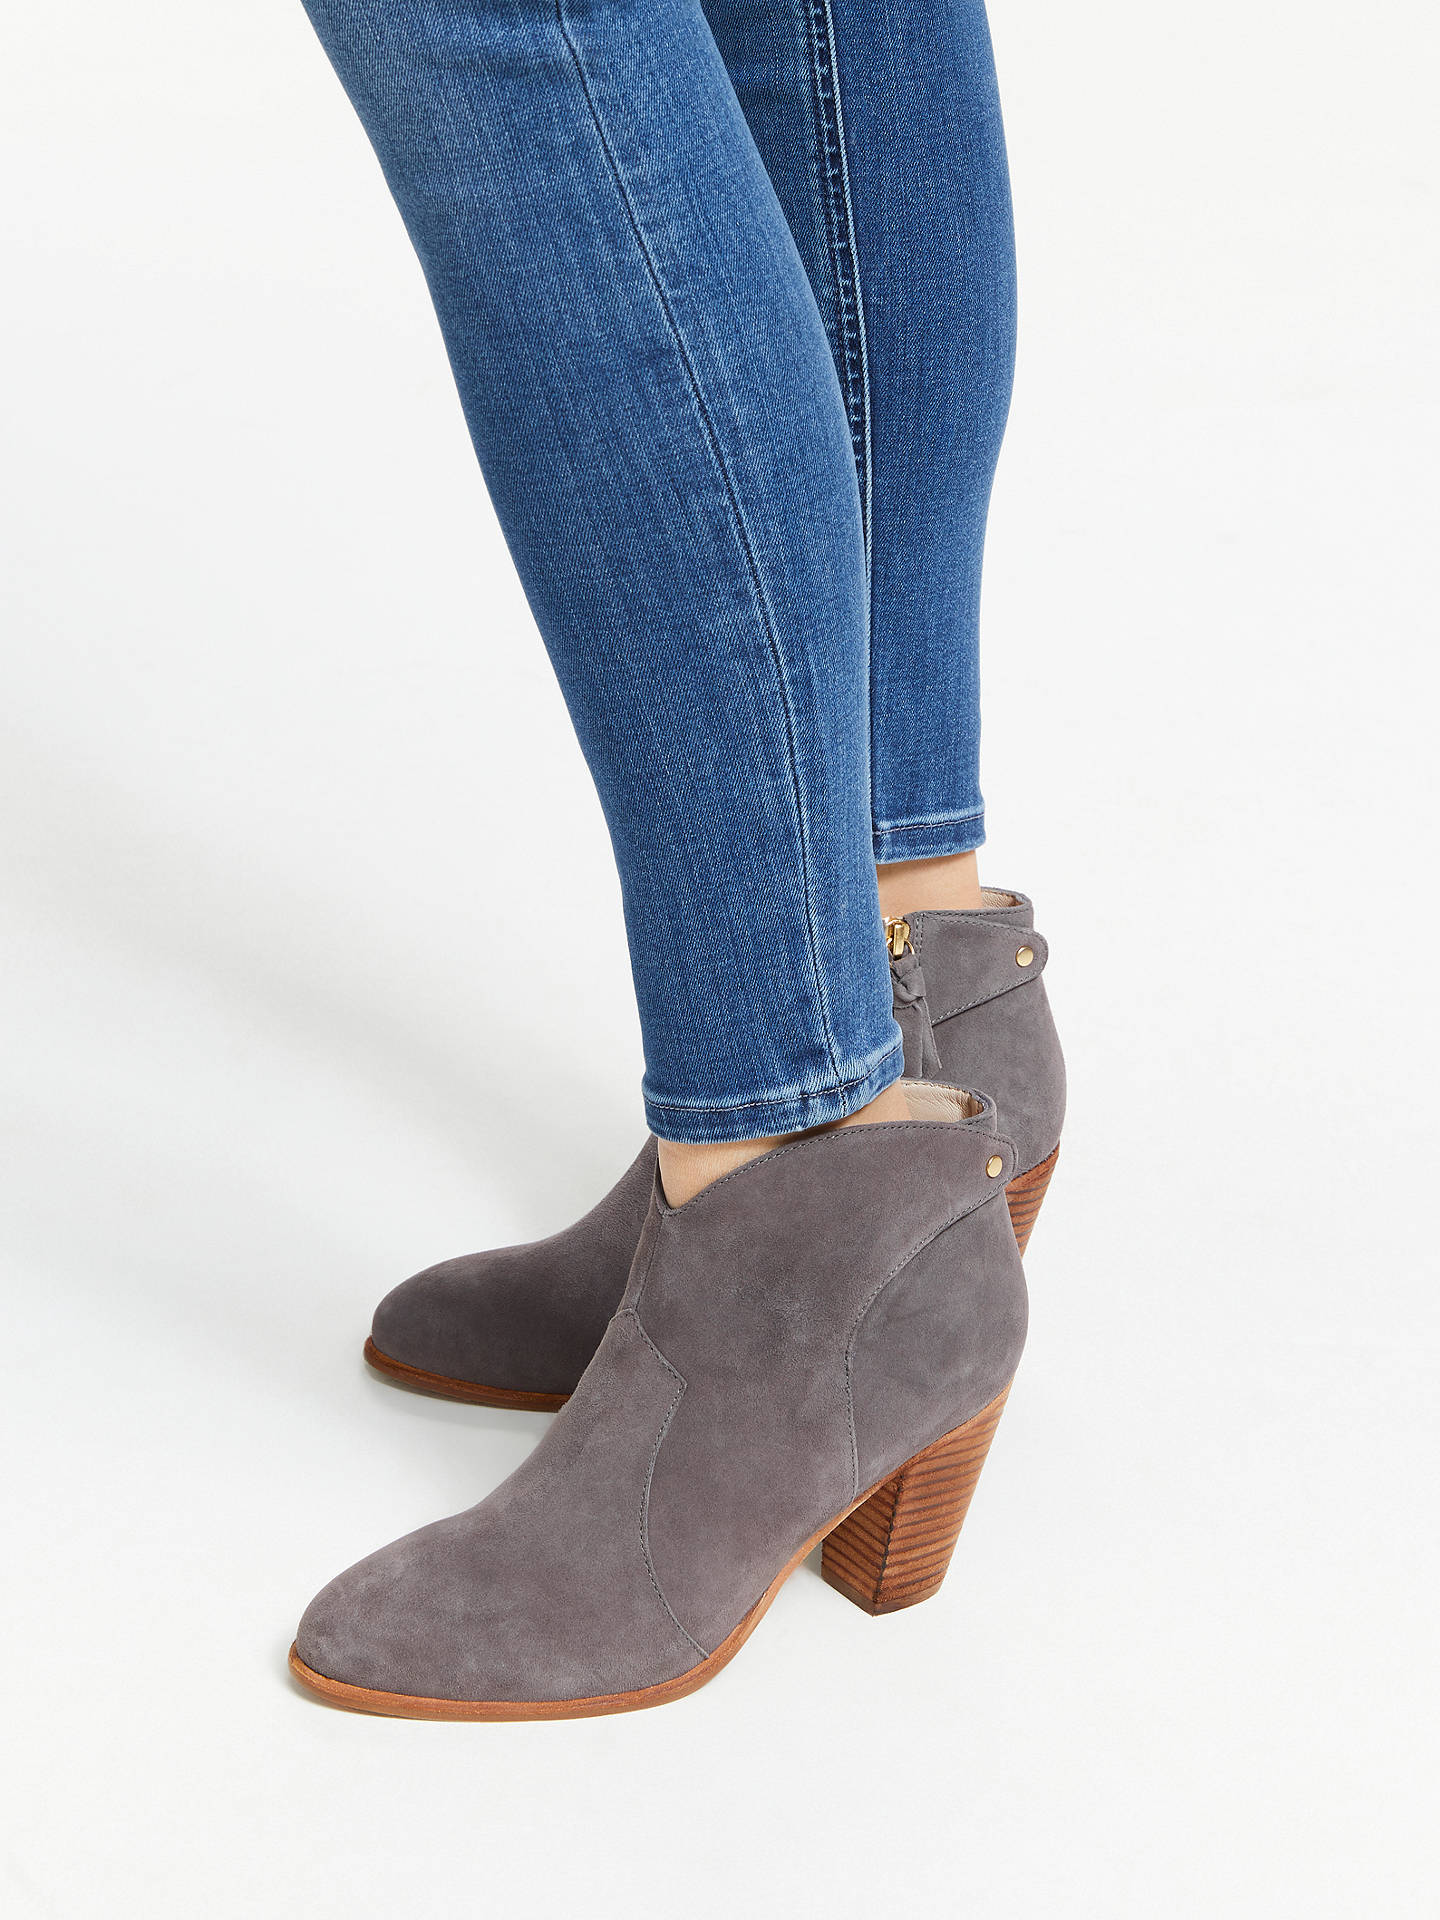 Buy Boden Hoxton Heeled Ankle Boots, Pewter, 4 Online at johnlewis.com